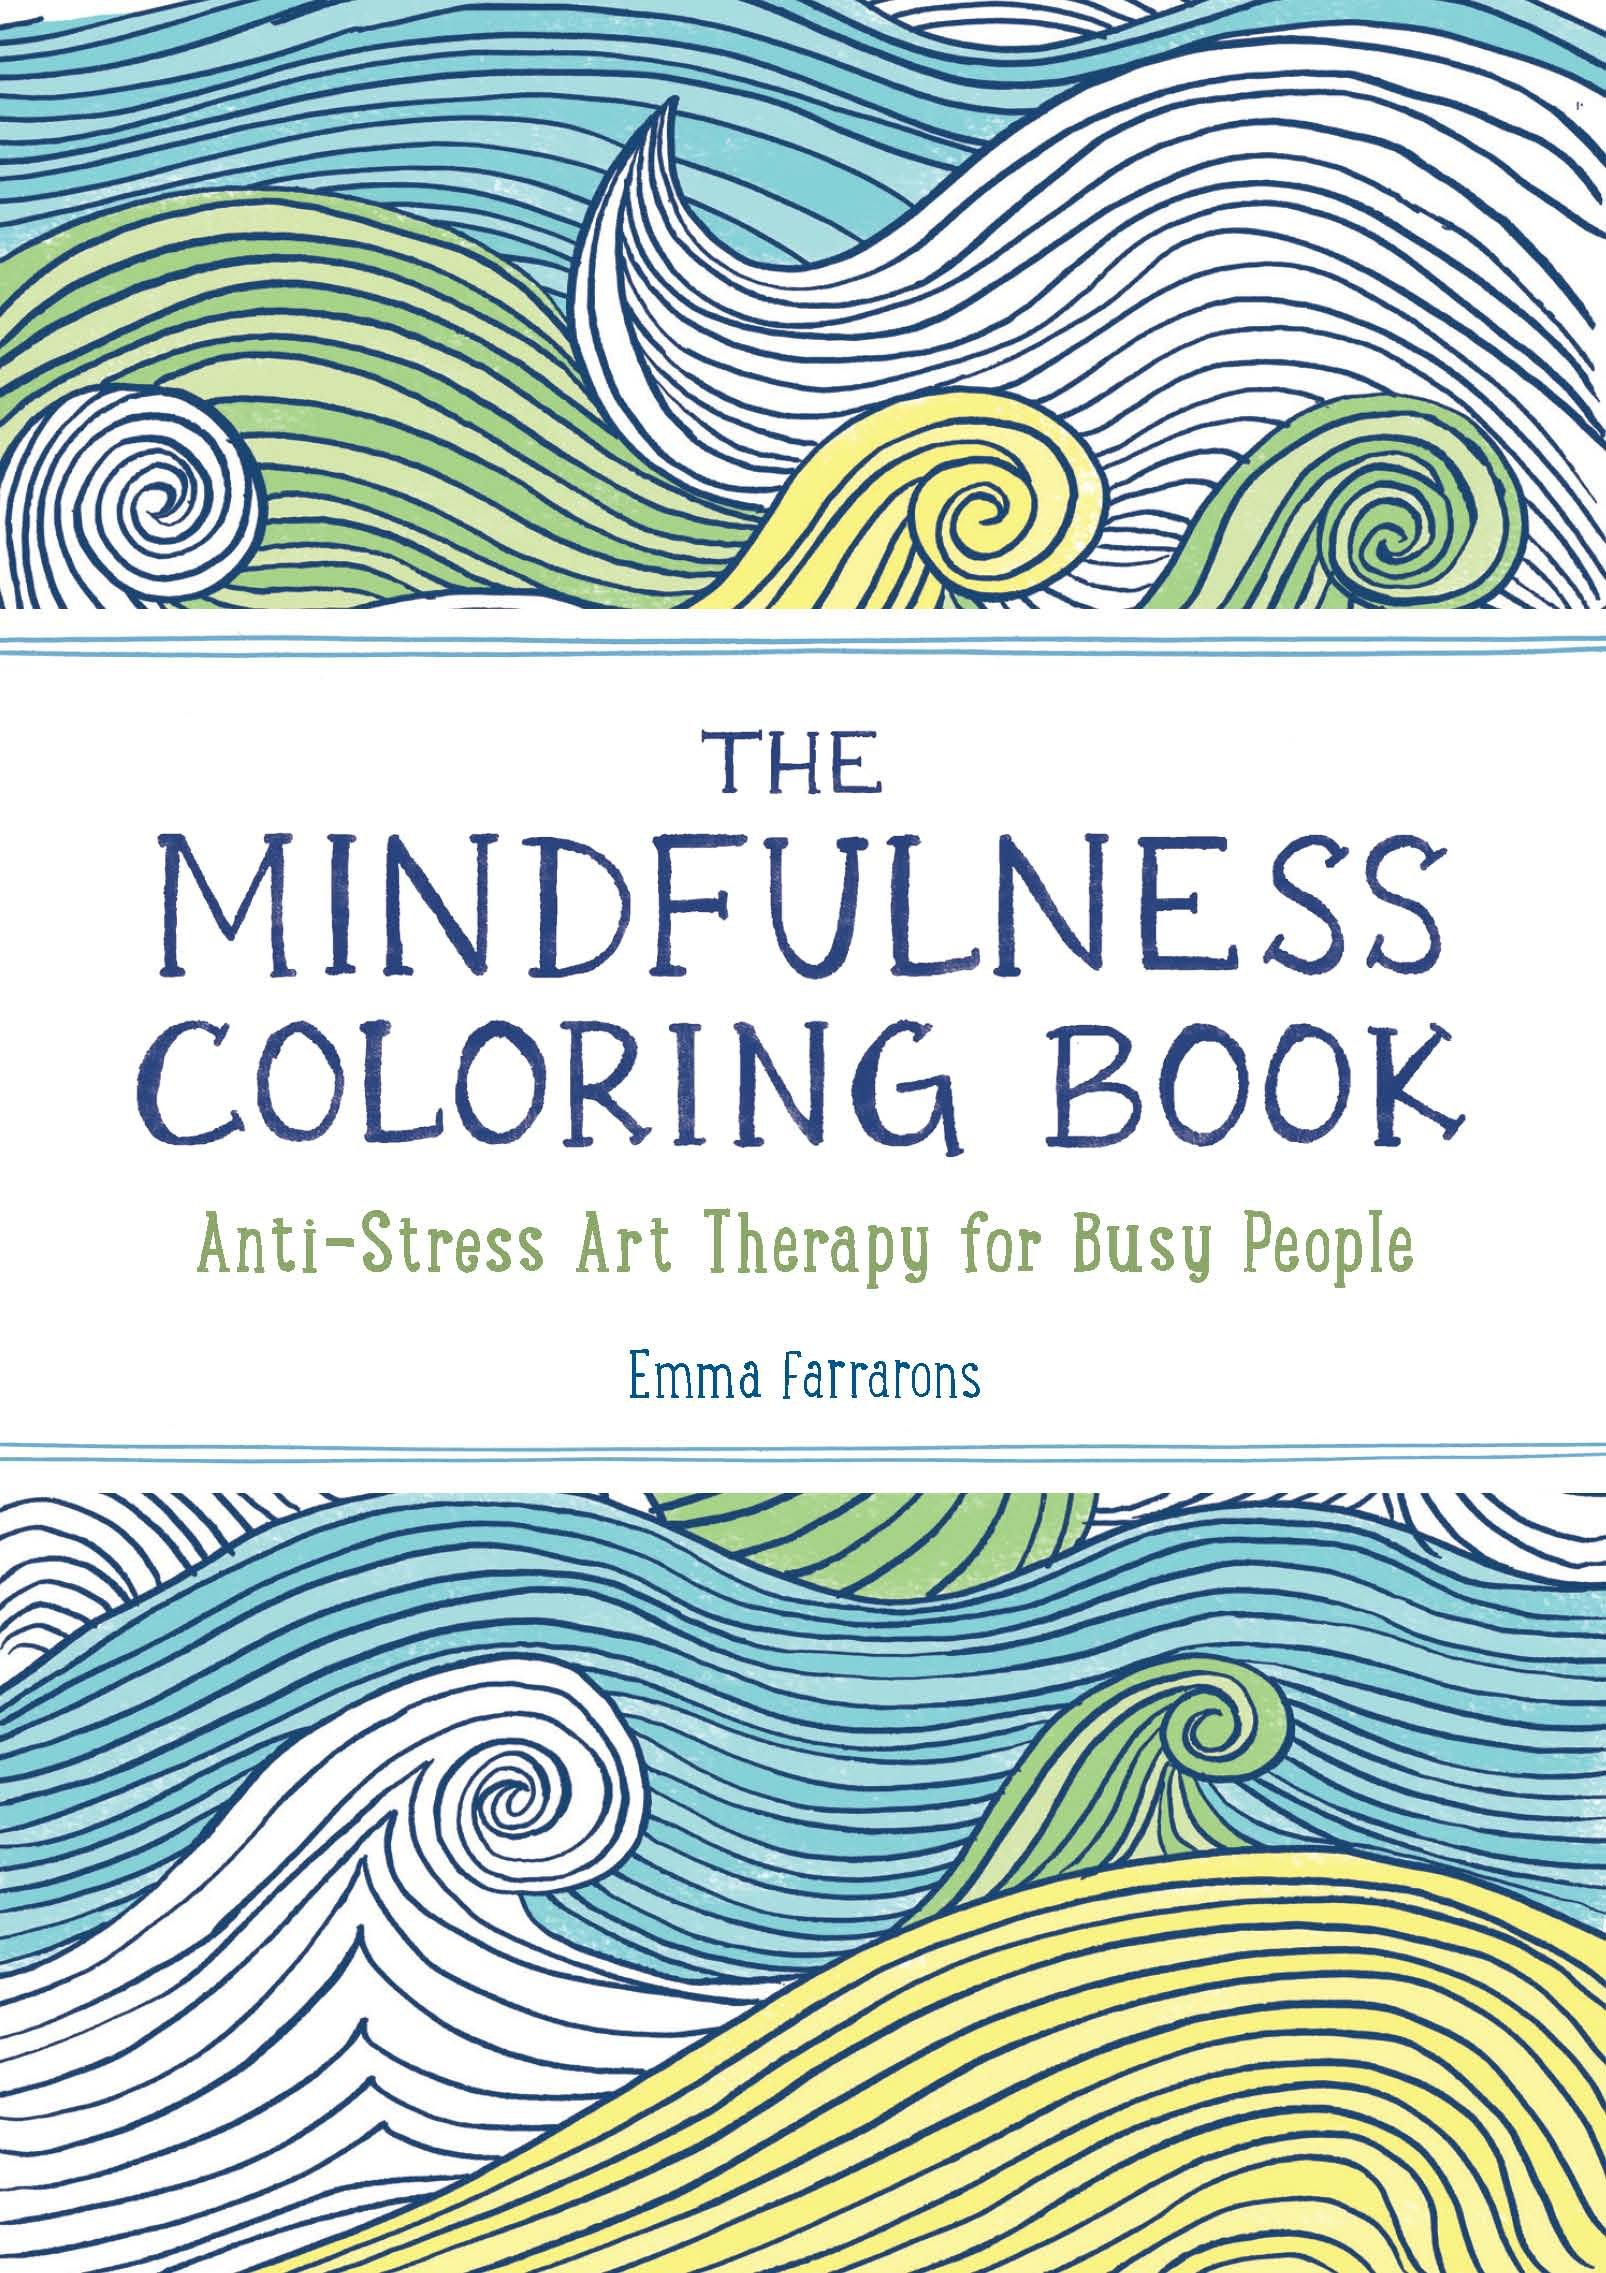 mindfulness adult coloring book - Adults Coloring Books